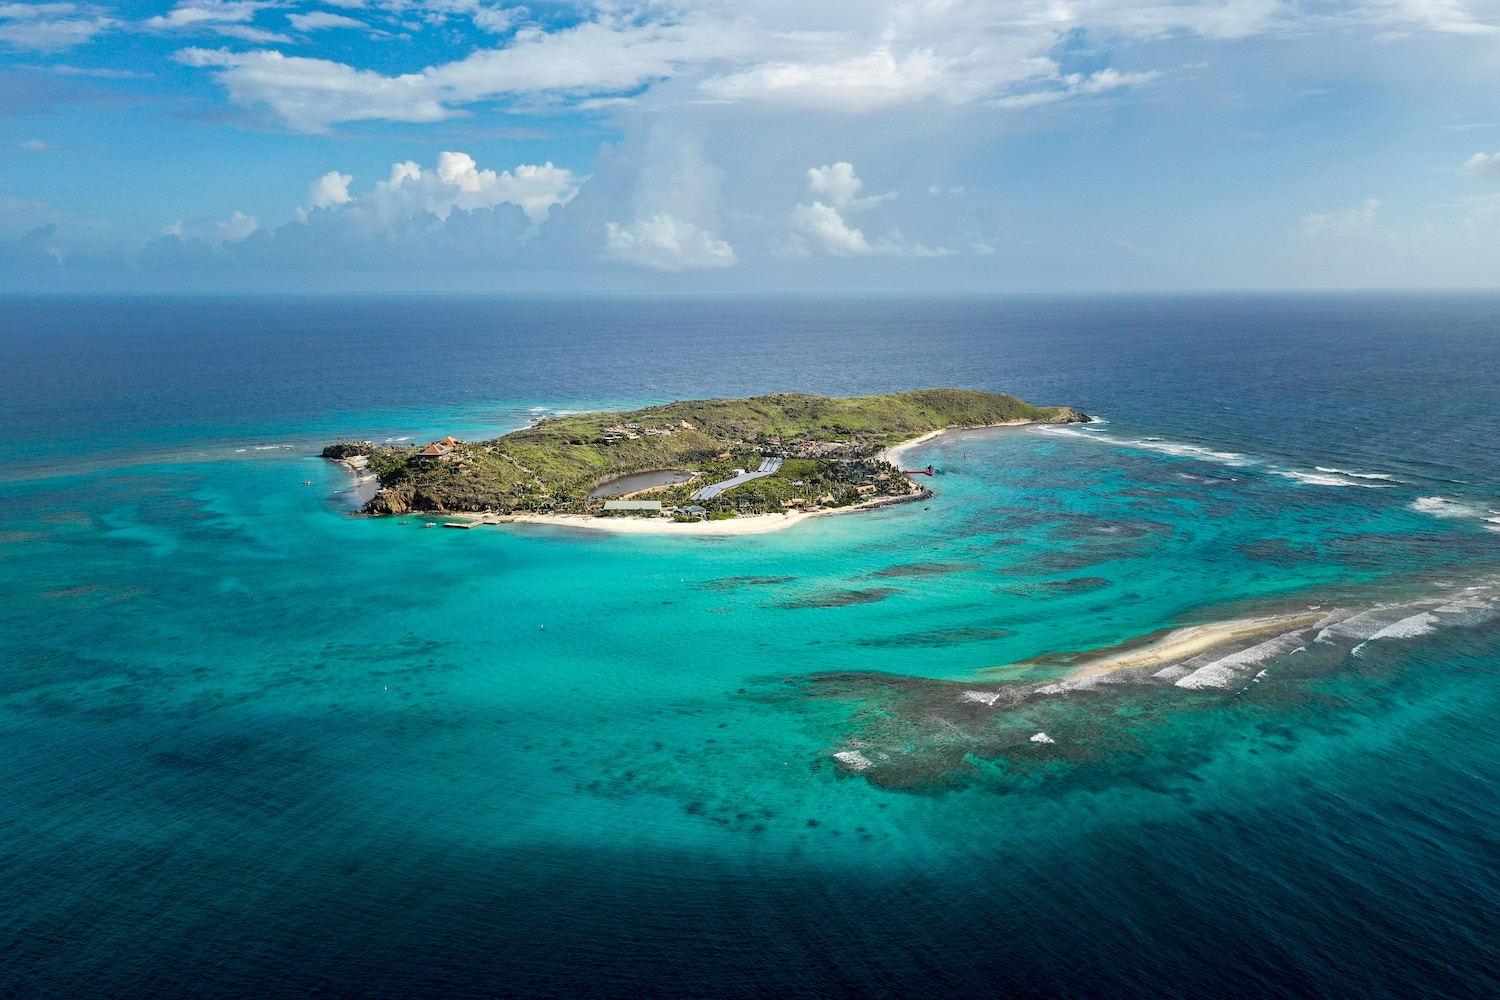 Aerial view of Necker Island in the BVI